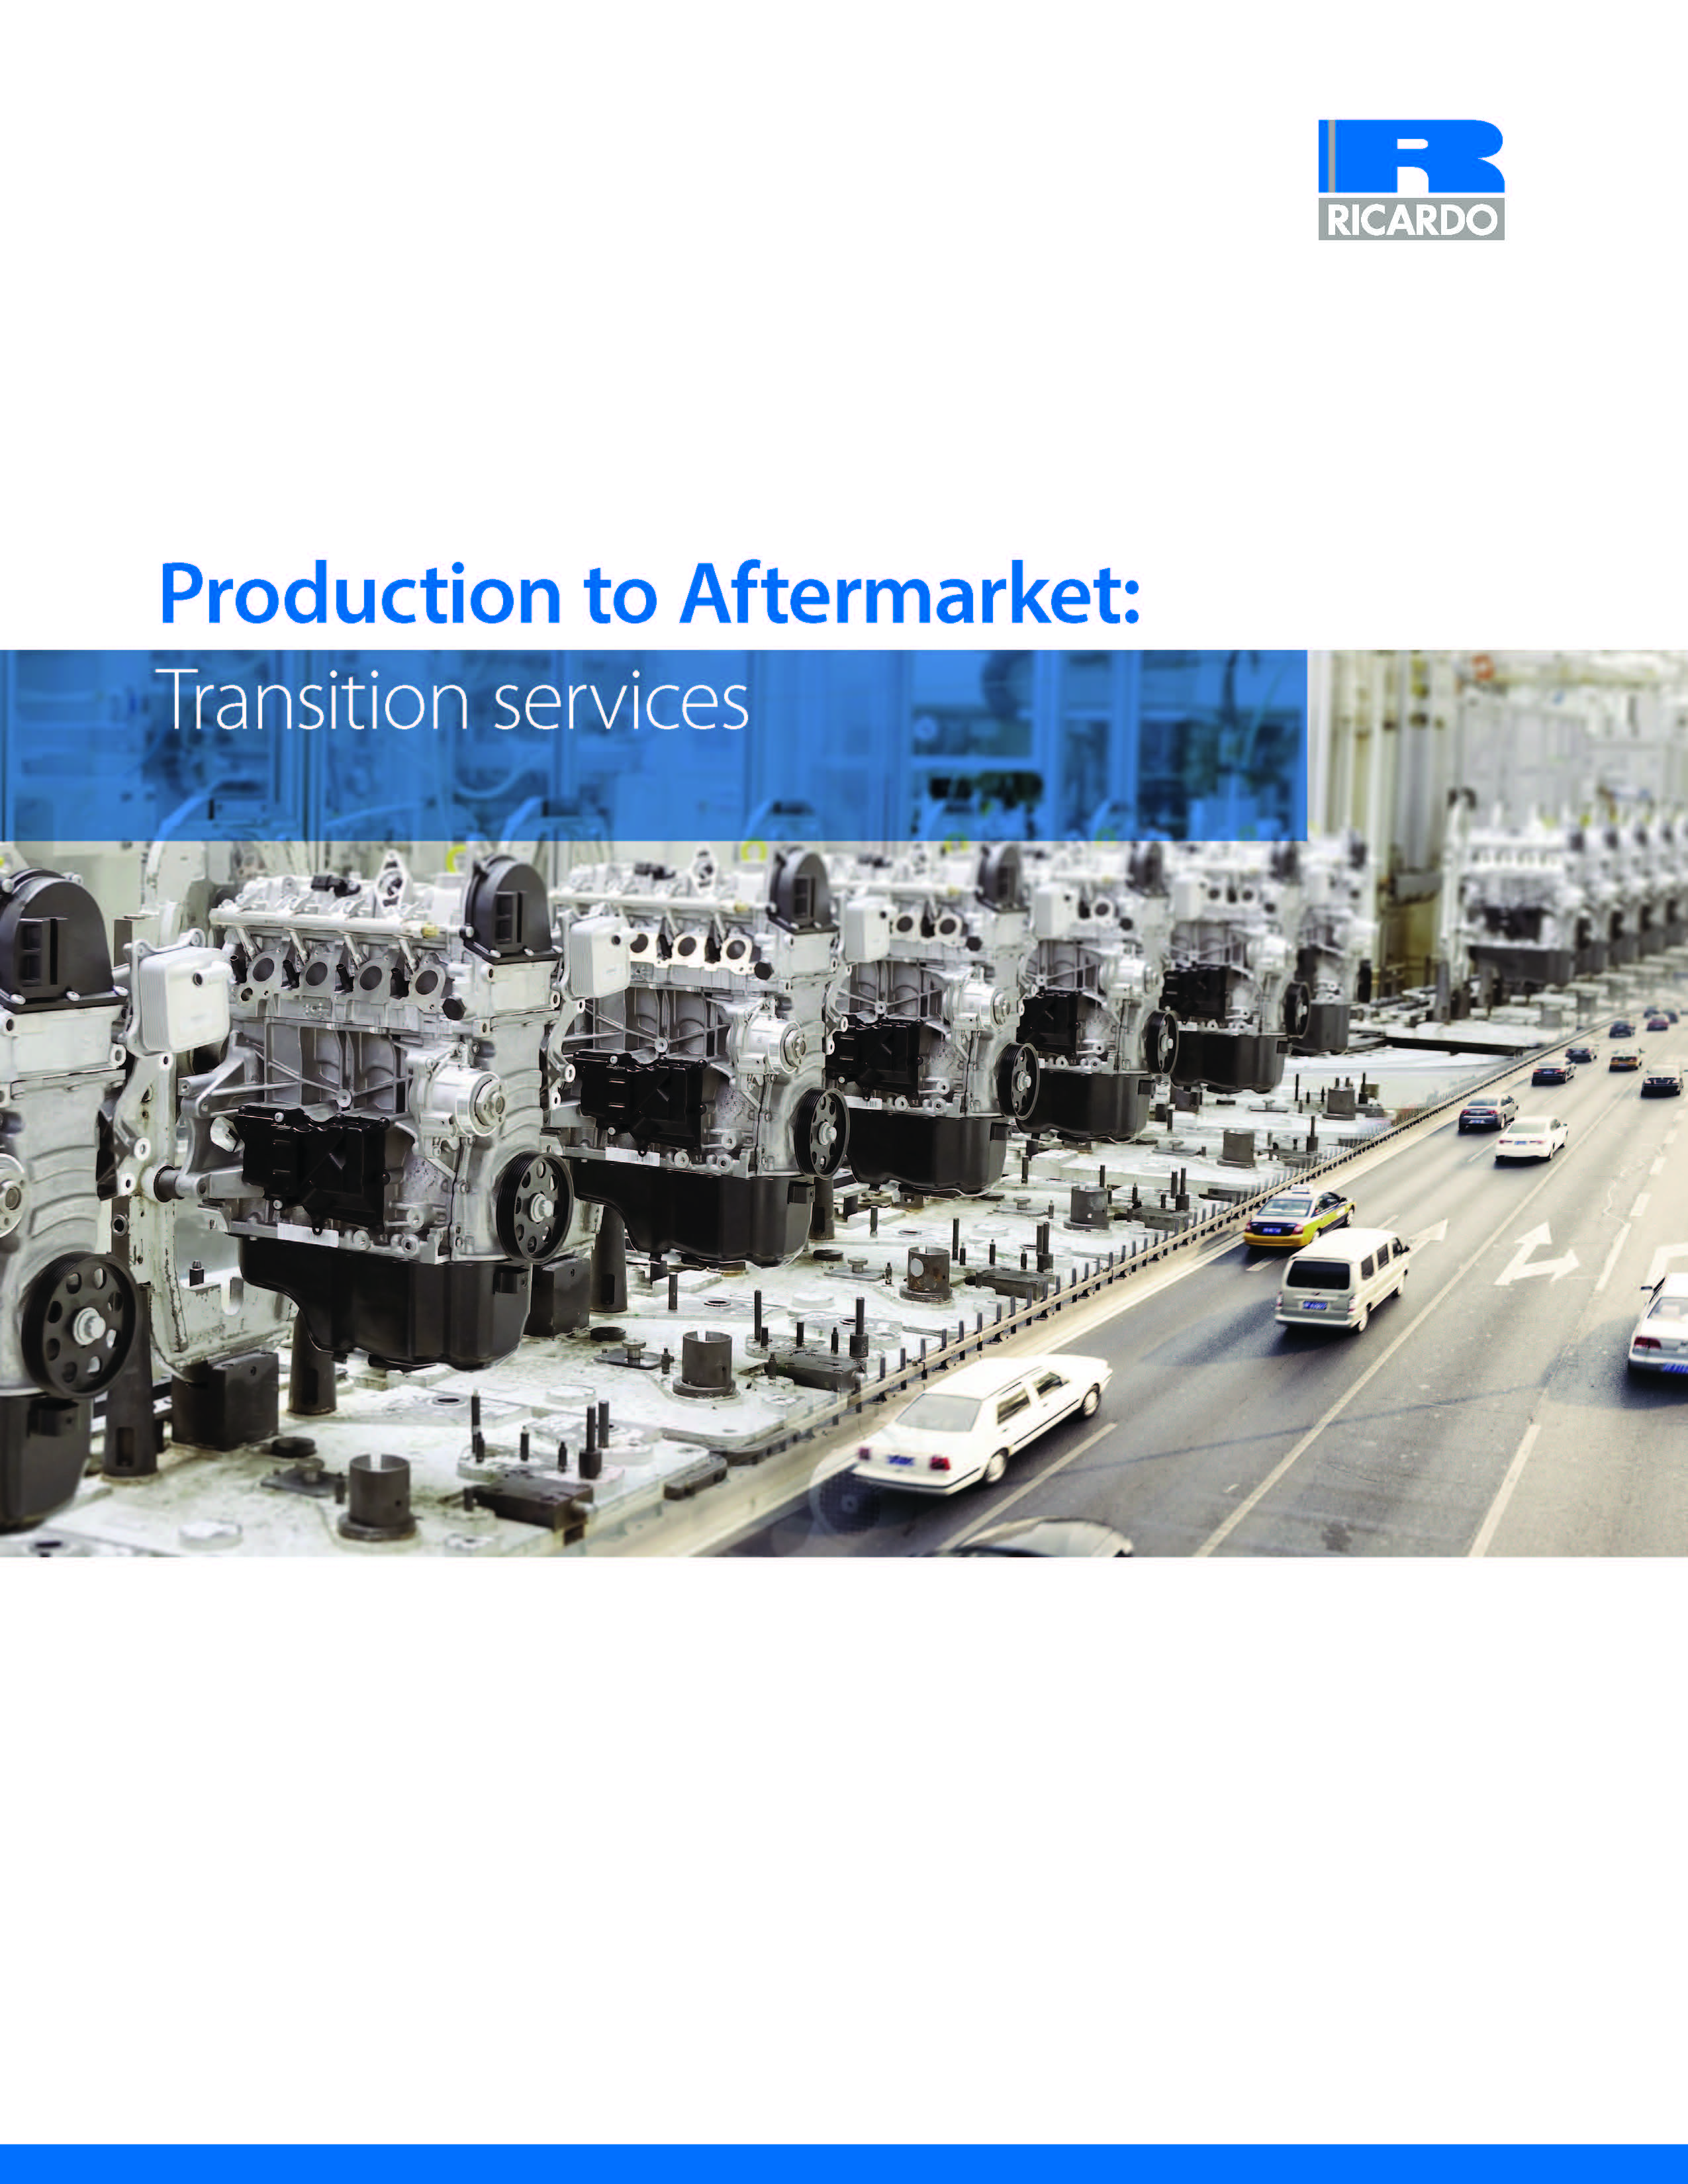 Production to Aftermarket: Transition services